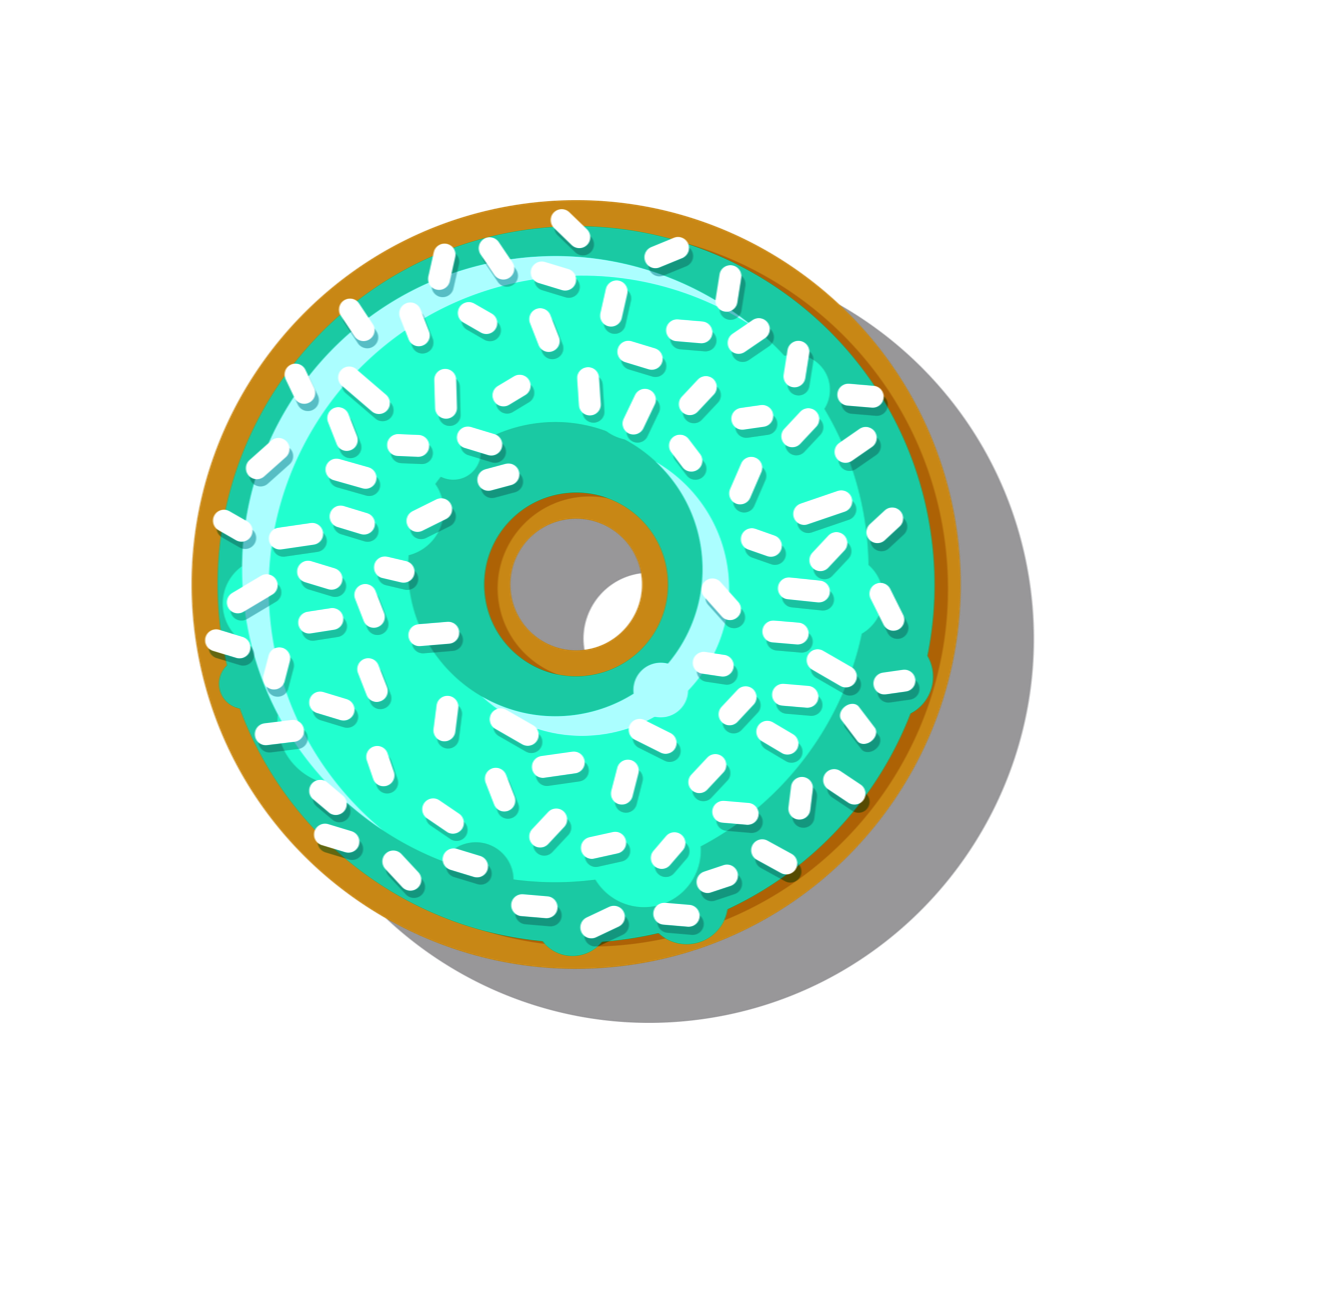 Doughnut clipart blue. Donuts food cafe pillow